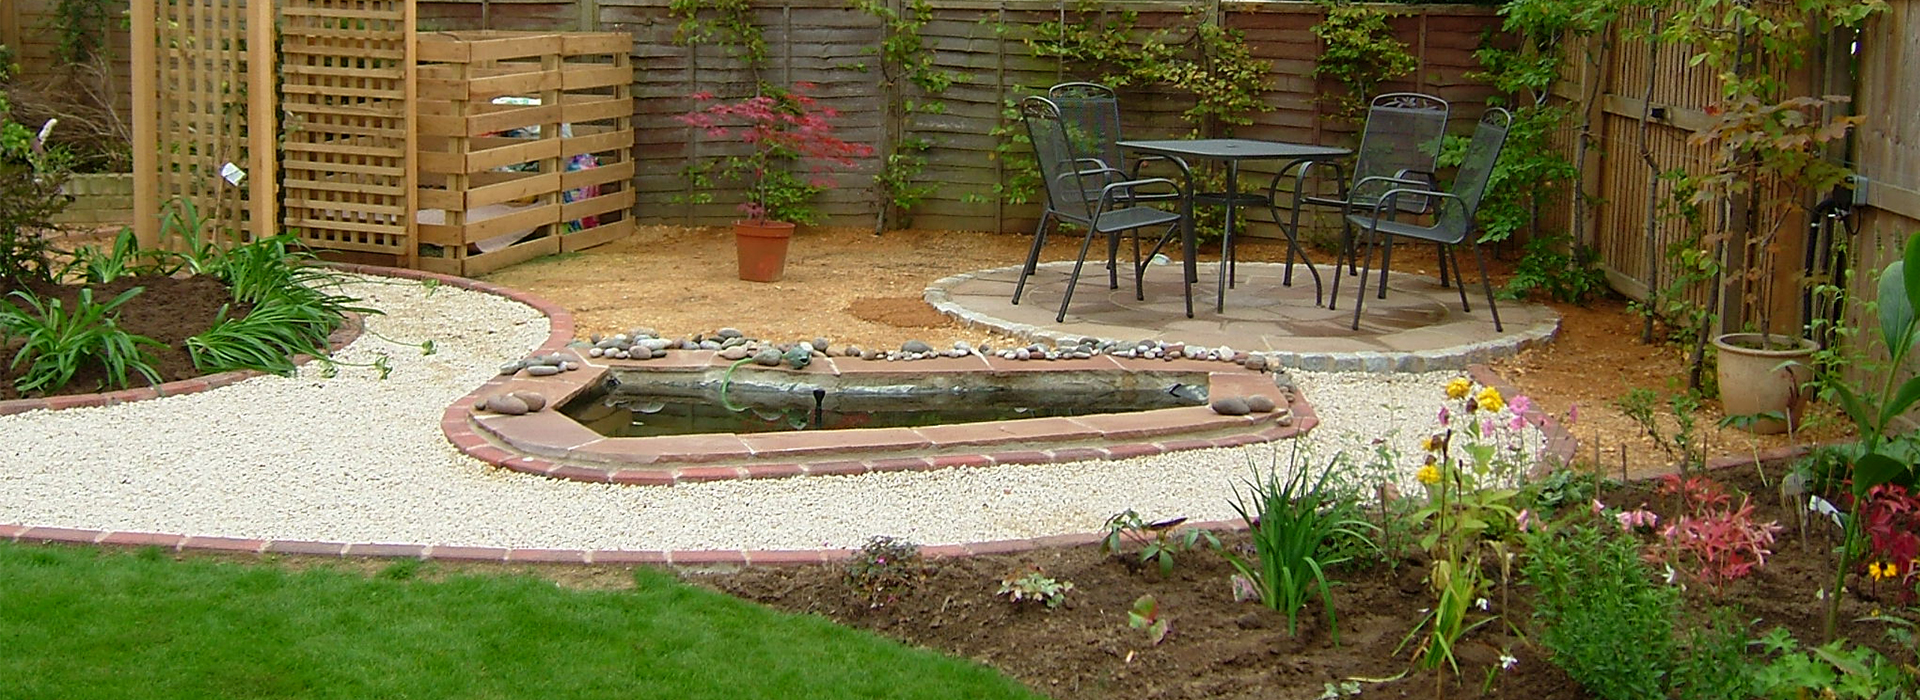 Somerset and oxford landscaping andrew tabor for Garden design yeovil